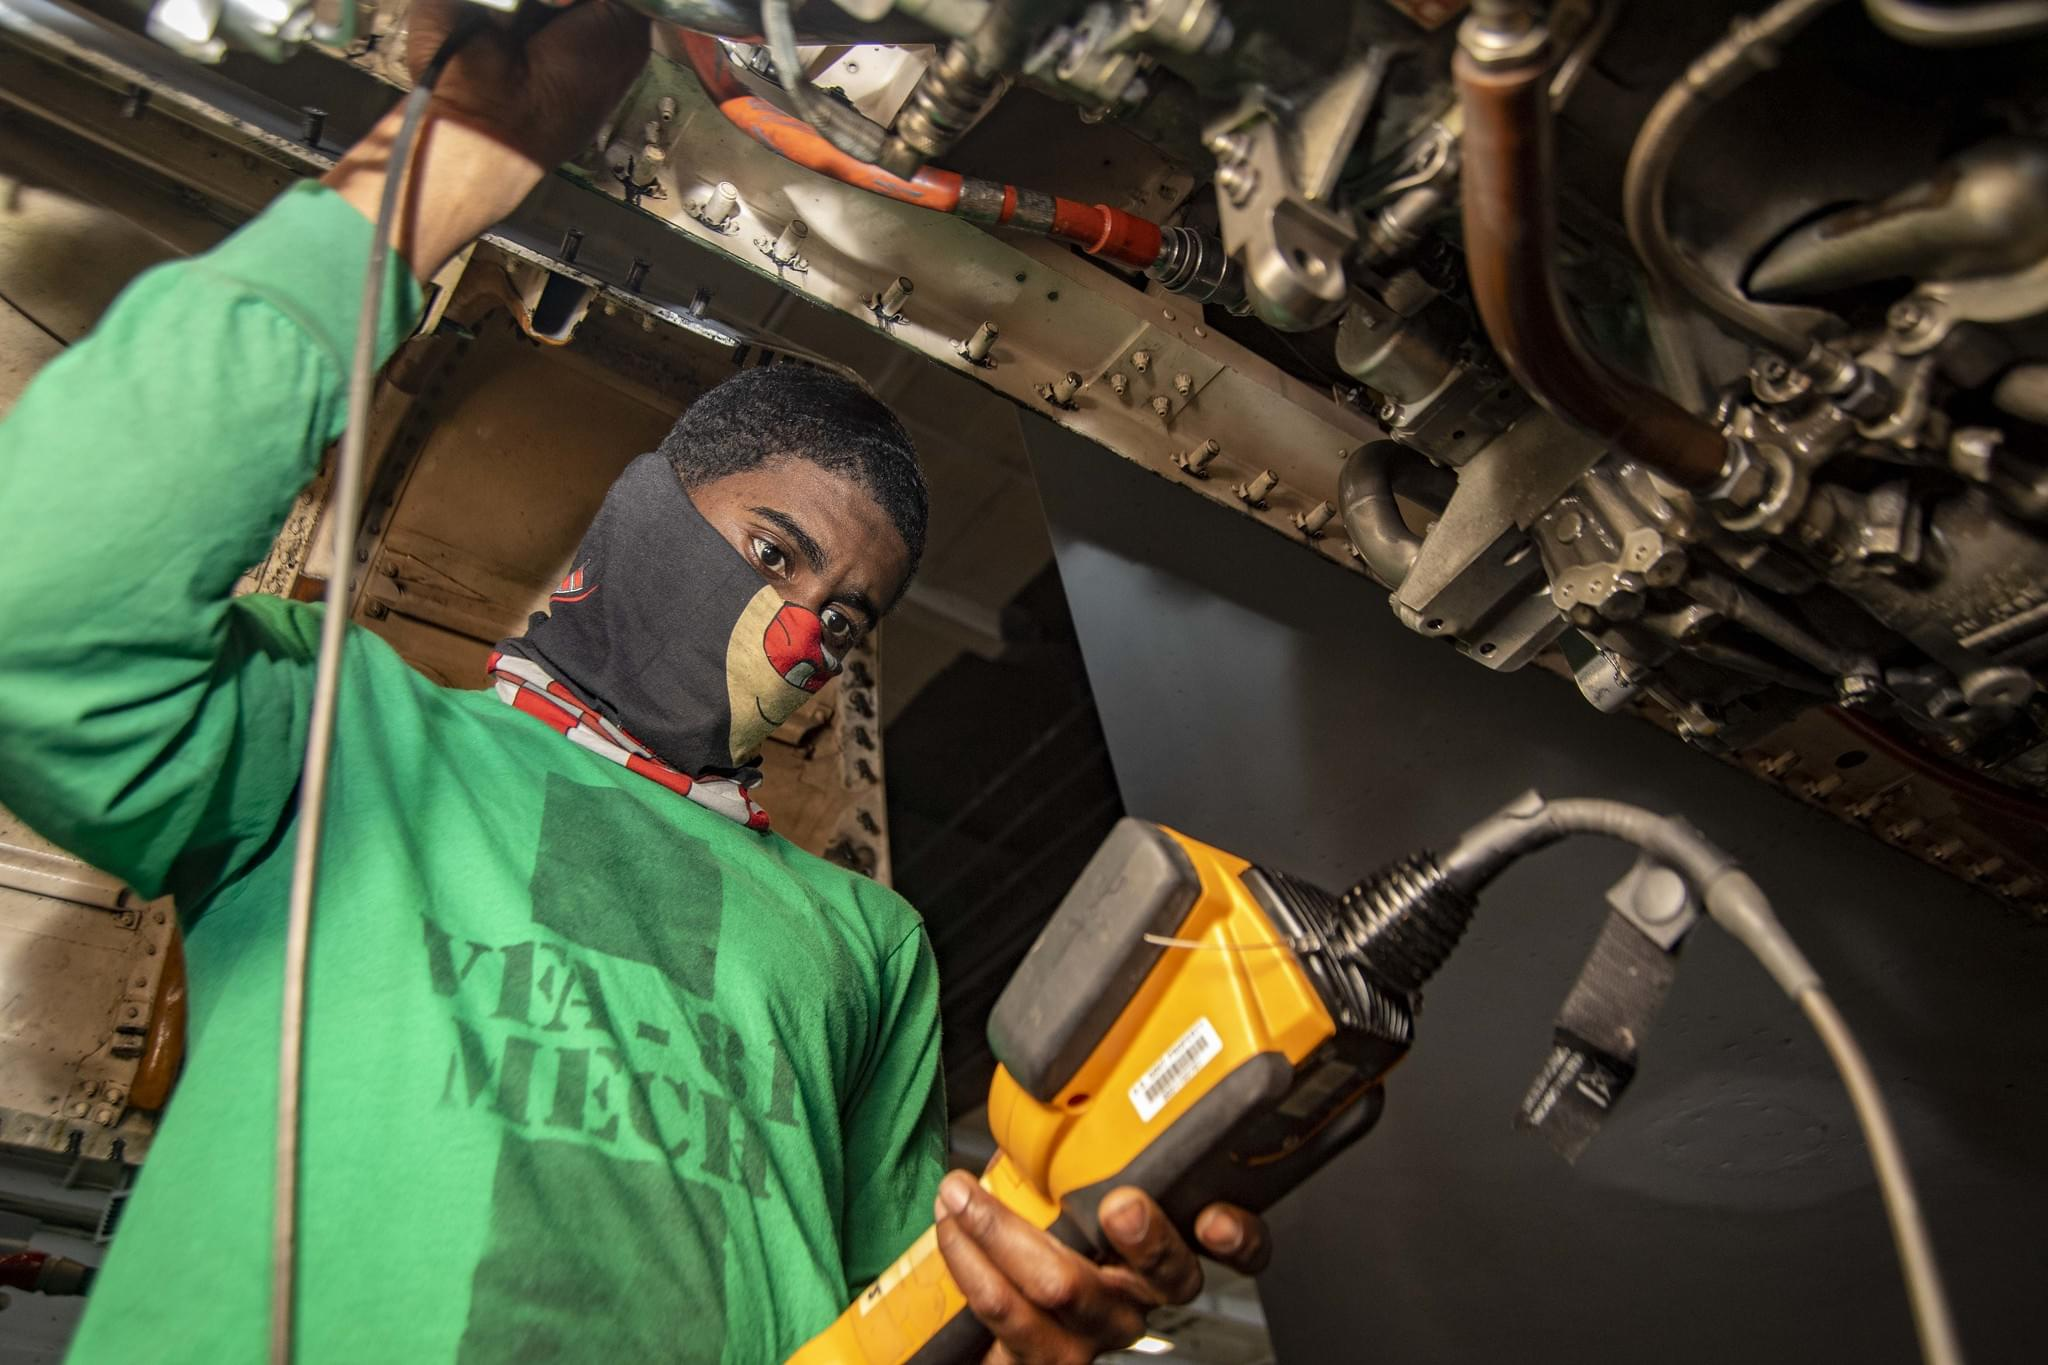 Military Spotlight: Newport News Sailor Inspects Engine on Aircraft Aboard U.S. Navy Warship